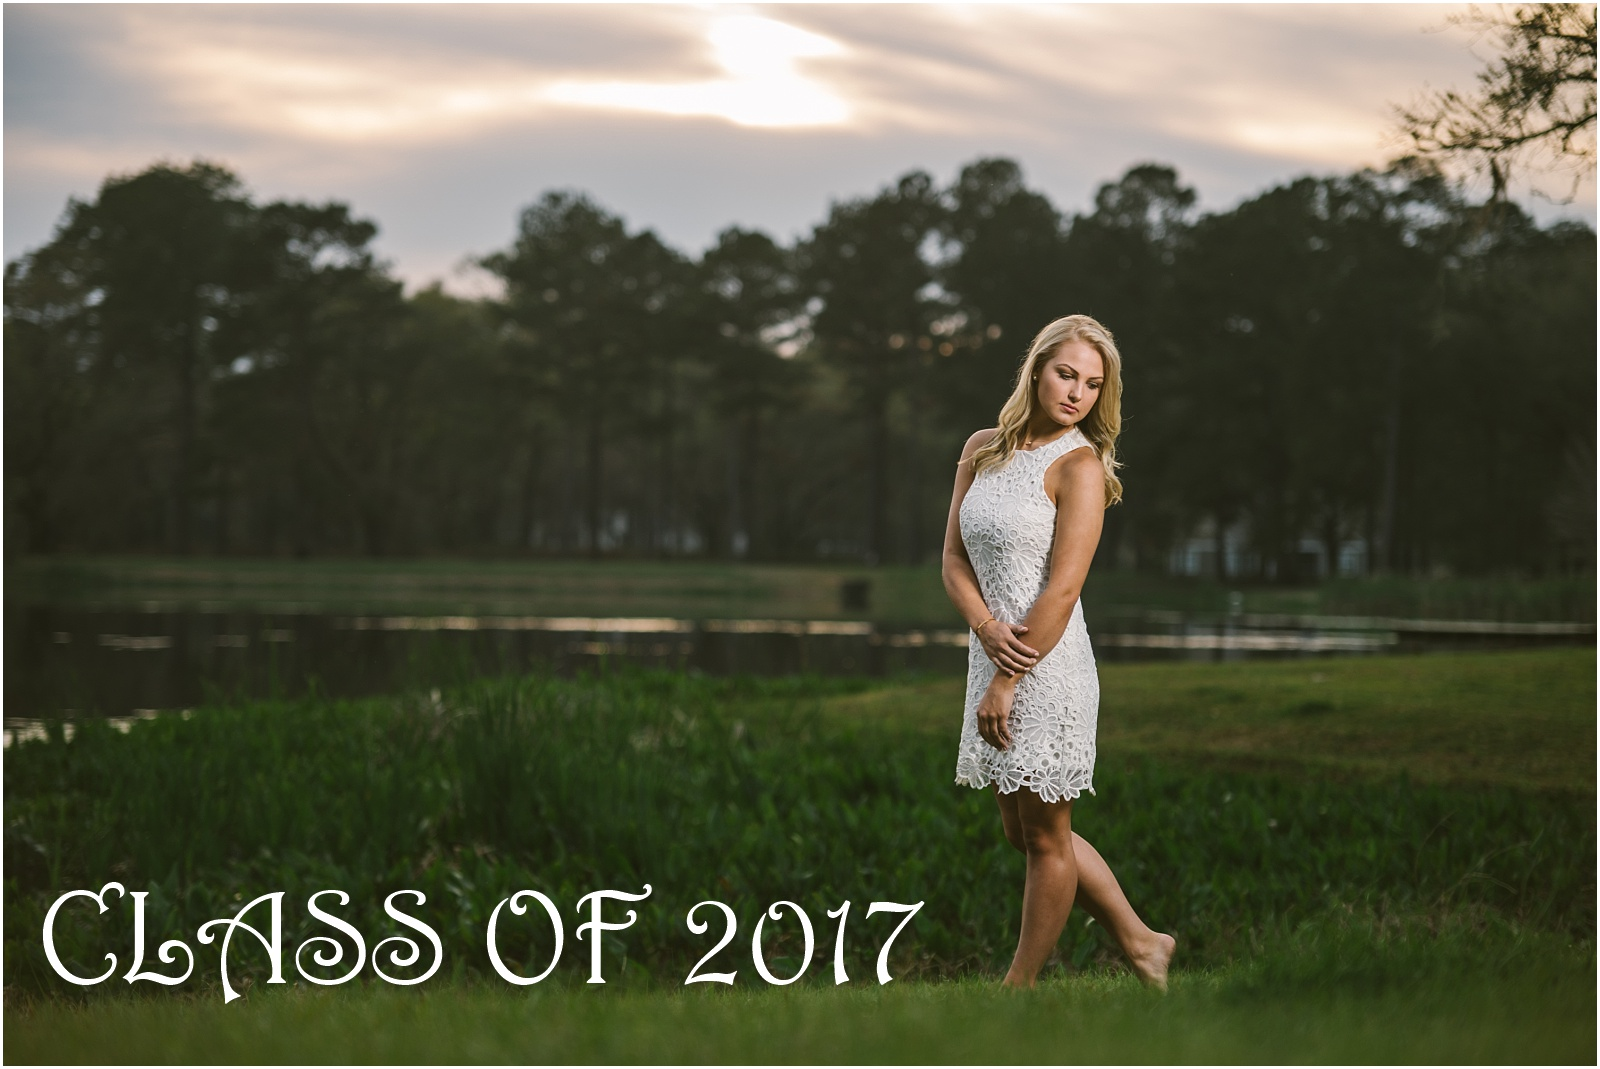 Tallahassee senior portrait photographer